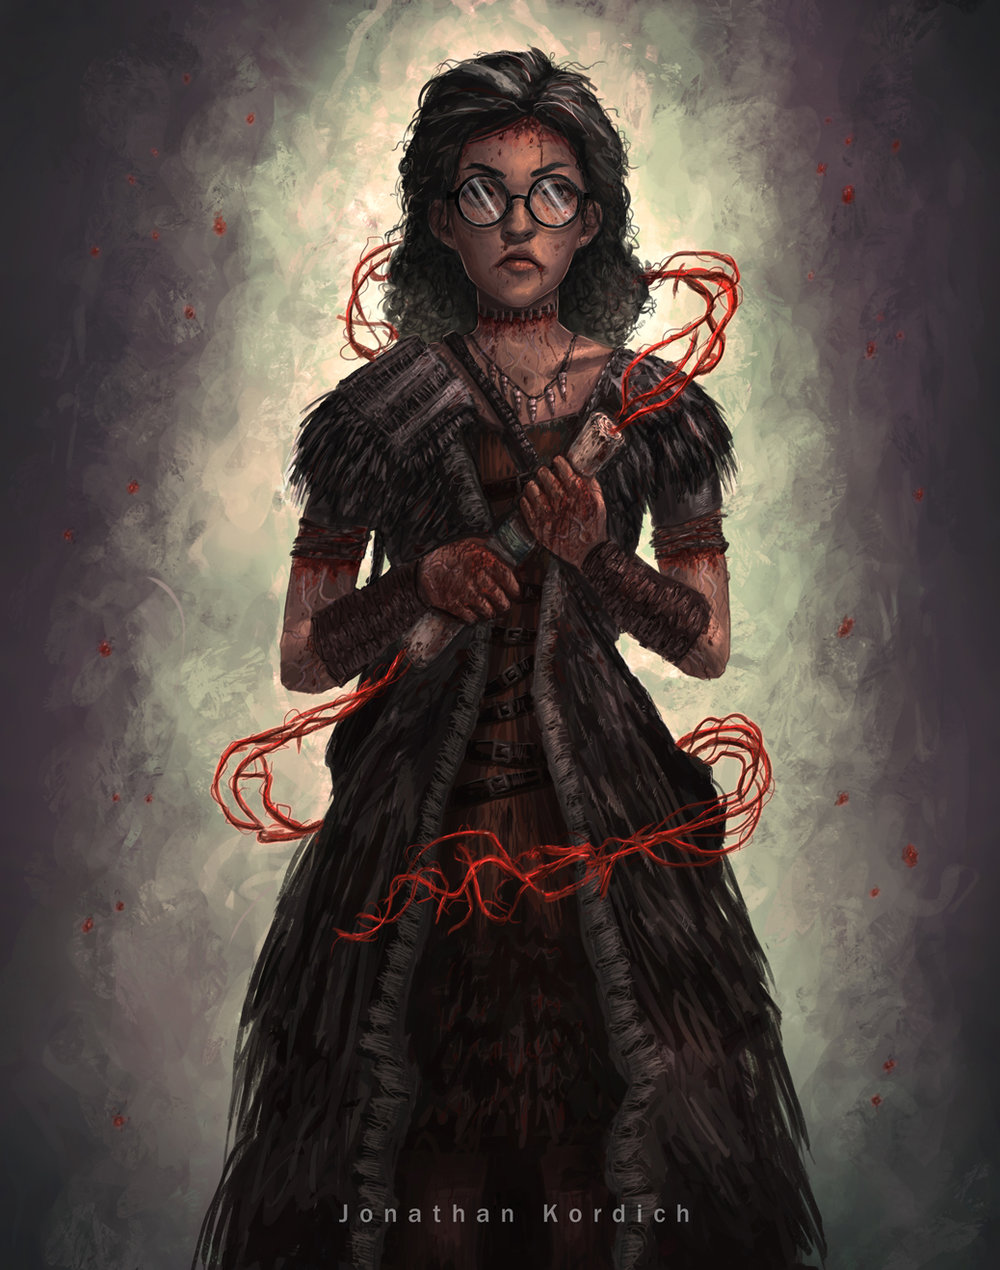 A witch conjures blood magic using a paper scroll that is firmly gripped between both of her hands. Several instances of thorns and other skin-piercing accessories allow her to channel this.